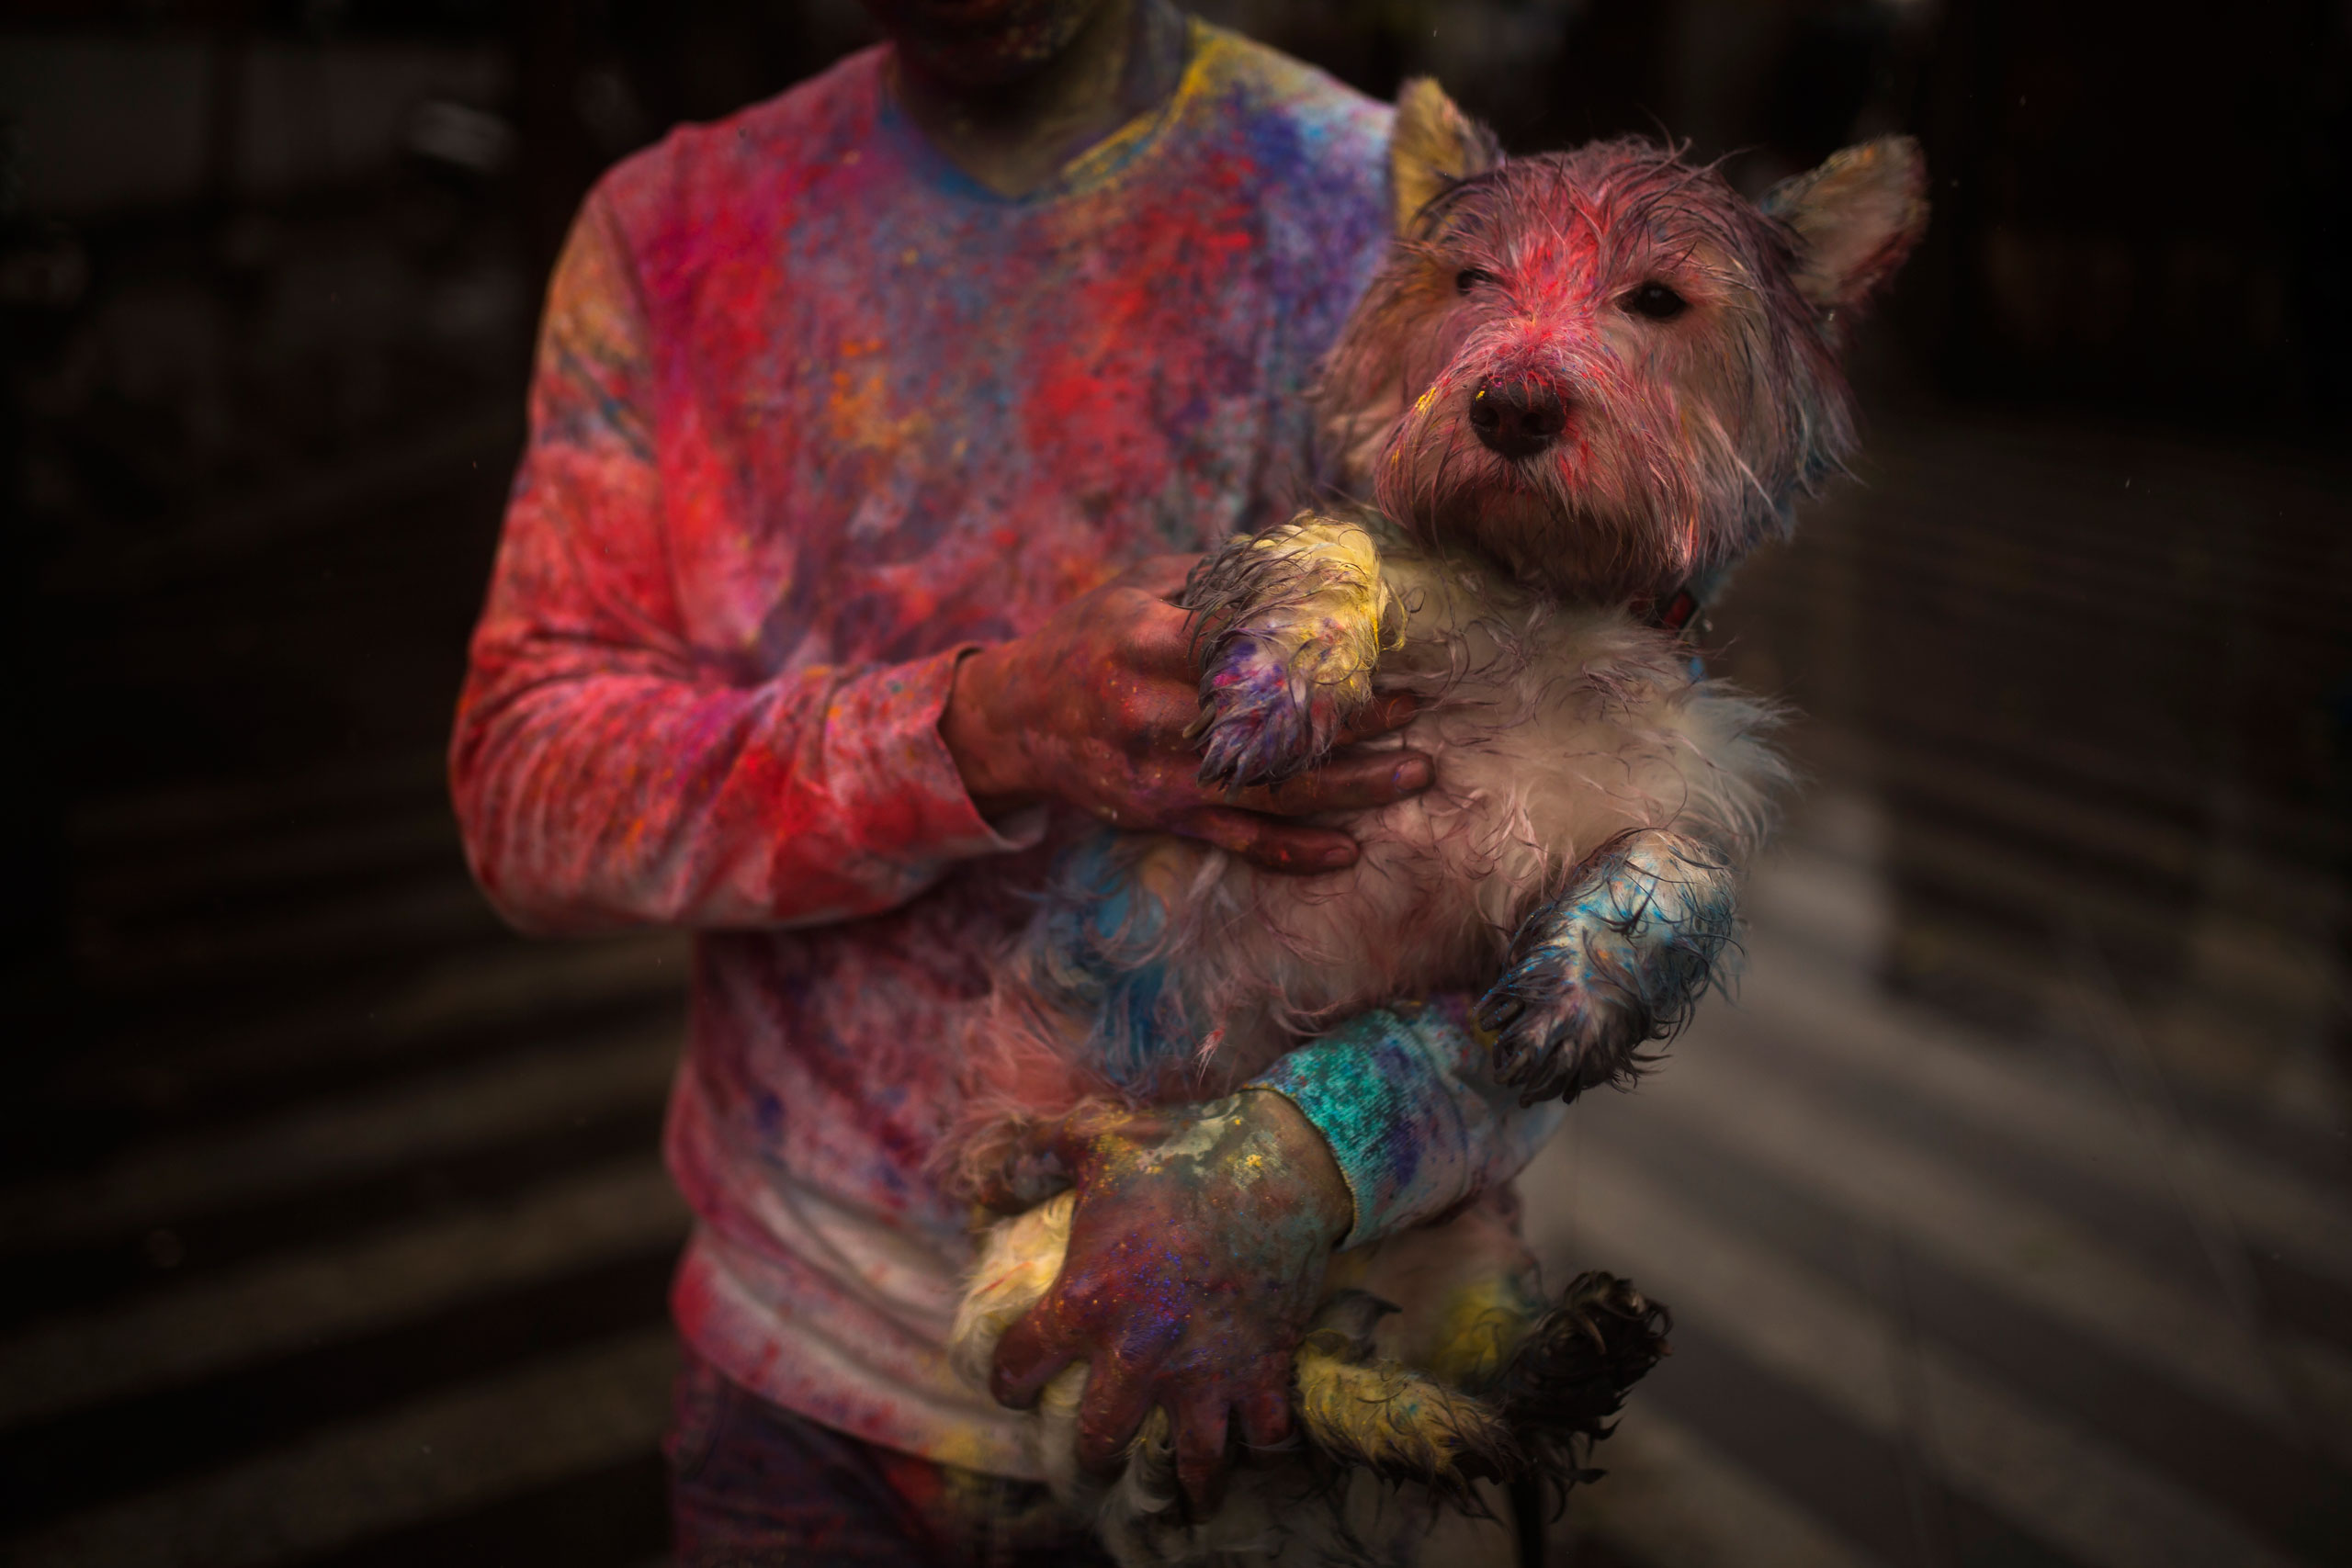 A reveler carries his dog during a Holi Festival in Madrid, Spain, April 26, 2015. The festival is based on the Hindu spring festival Holi, also known as the festival of colors where participants throw at each other dry powder and colored water.